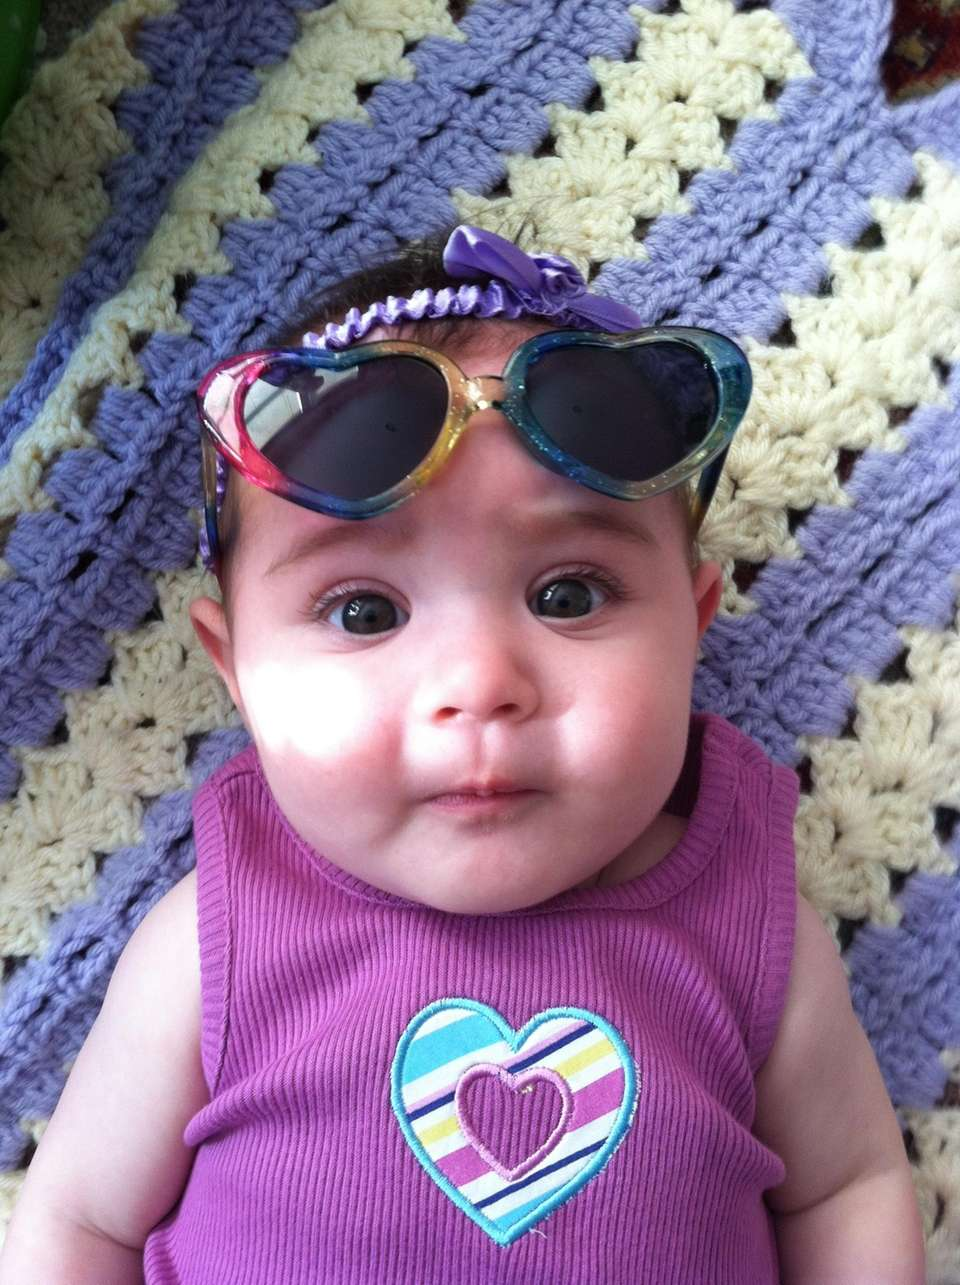 Natalie Rose with her first pair of shades